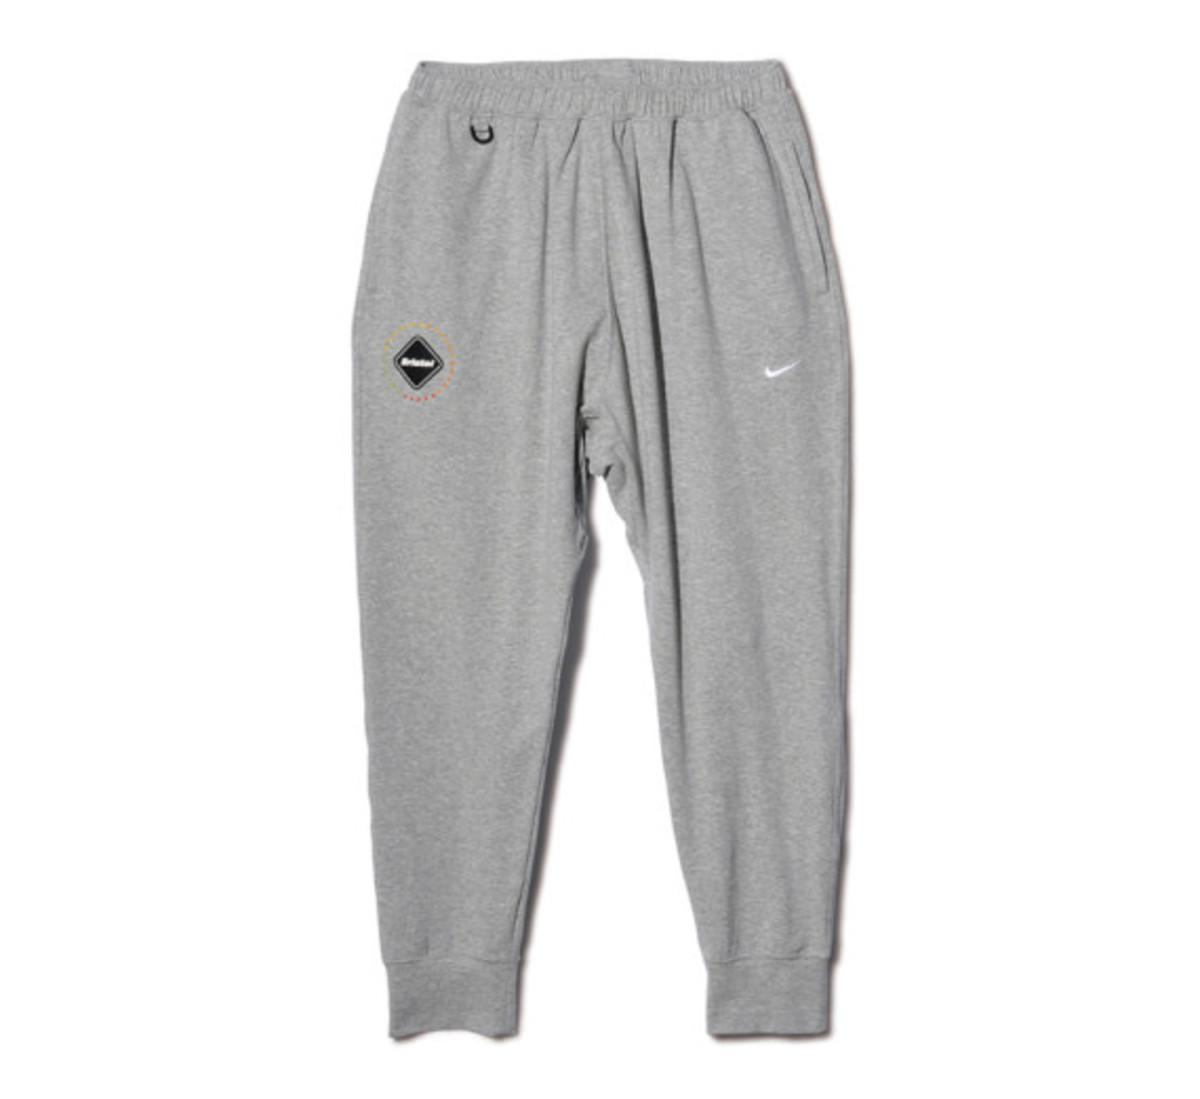 fcrb-sweat-ventilation-hoody-and-sweat-long-pants-08